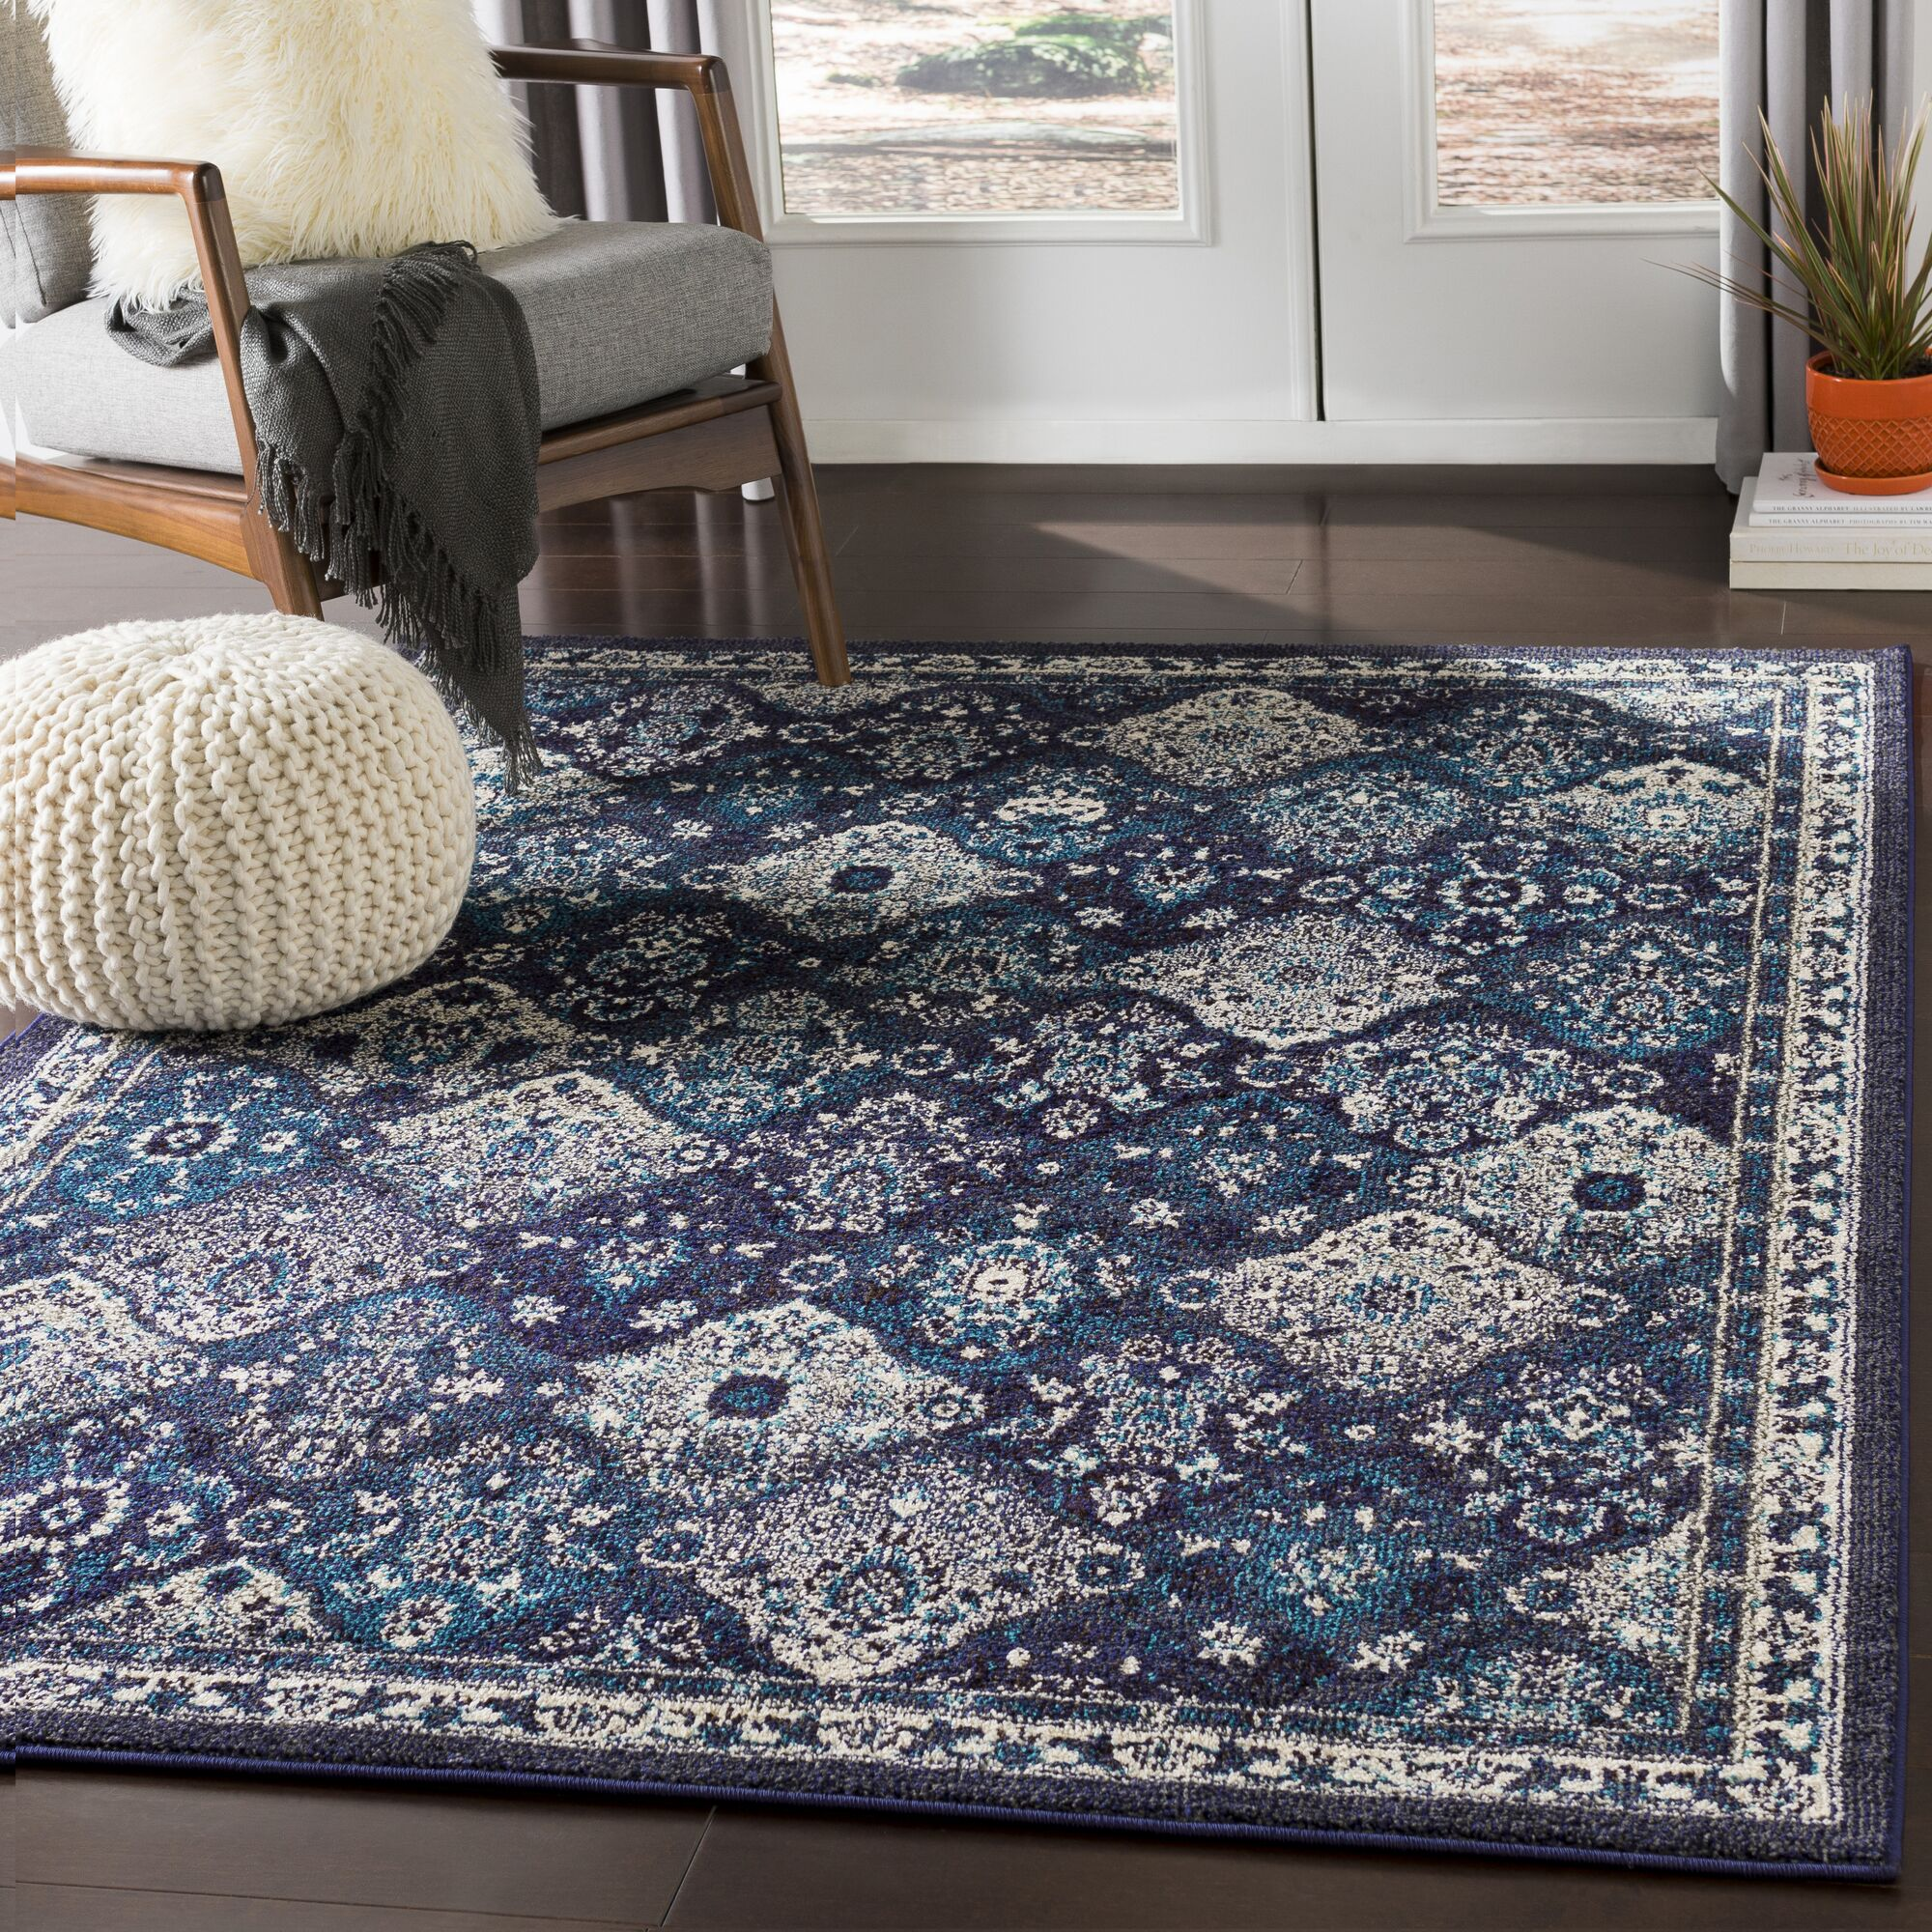 Berry Medallion Blue/Gray Area Rug Rug Size: Rectangle 7'10